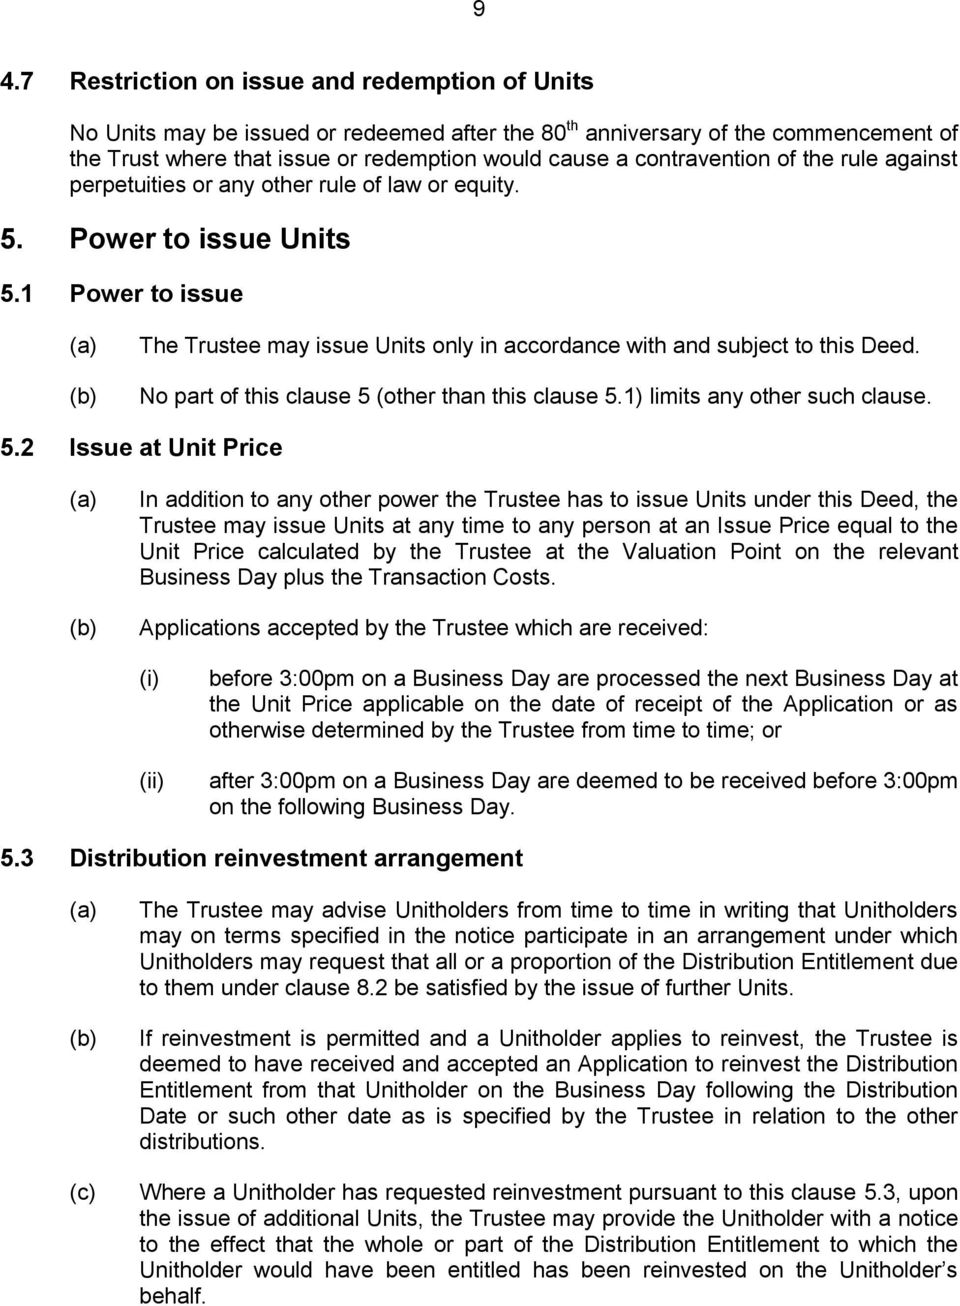 1 Power to issue The Trustee may issue Units only in accordance with and subject to this Deed. No part of this clause 5